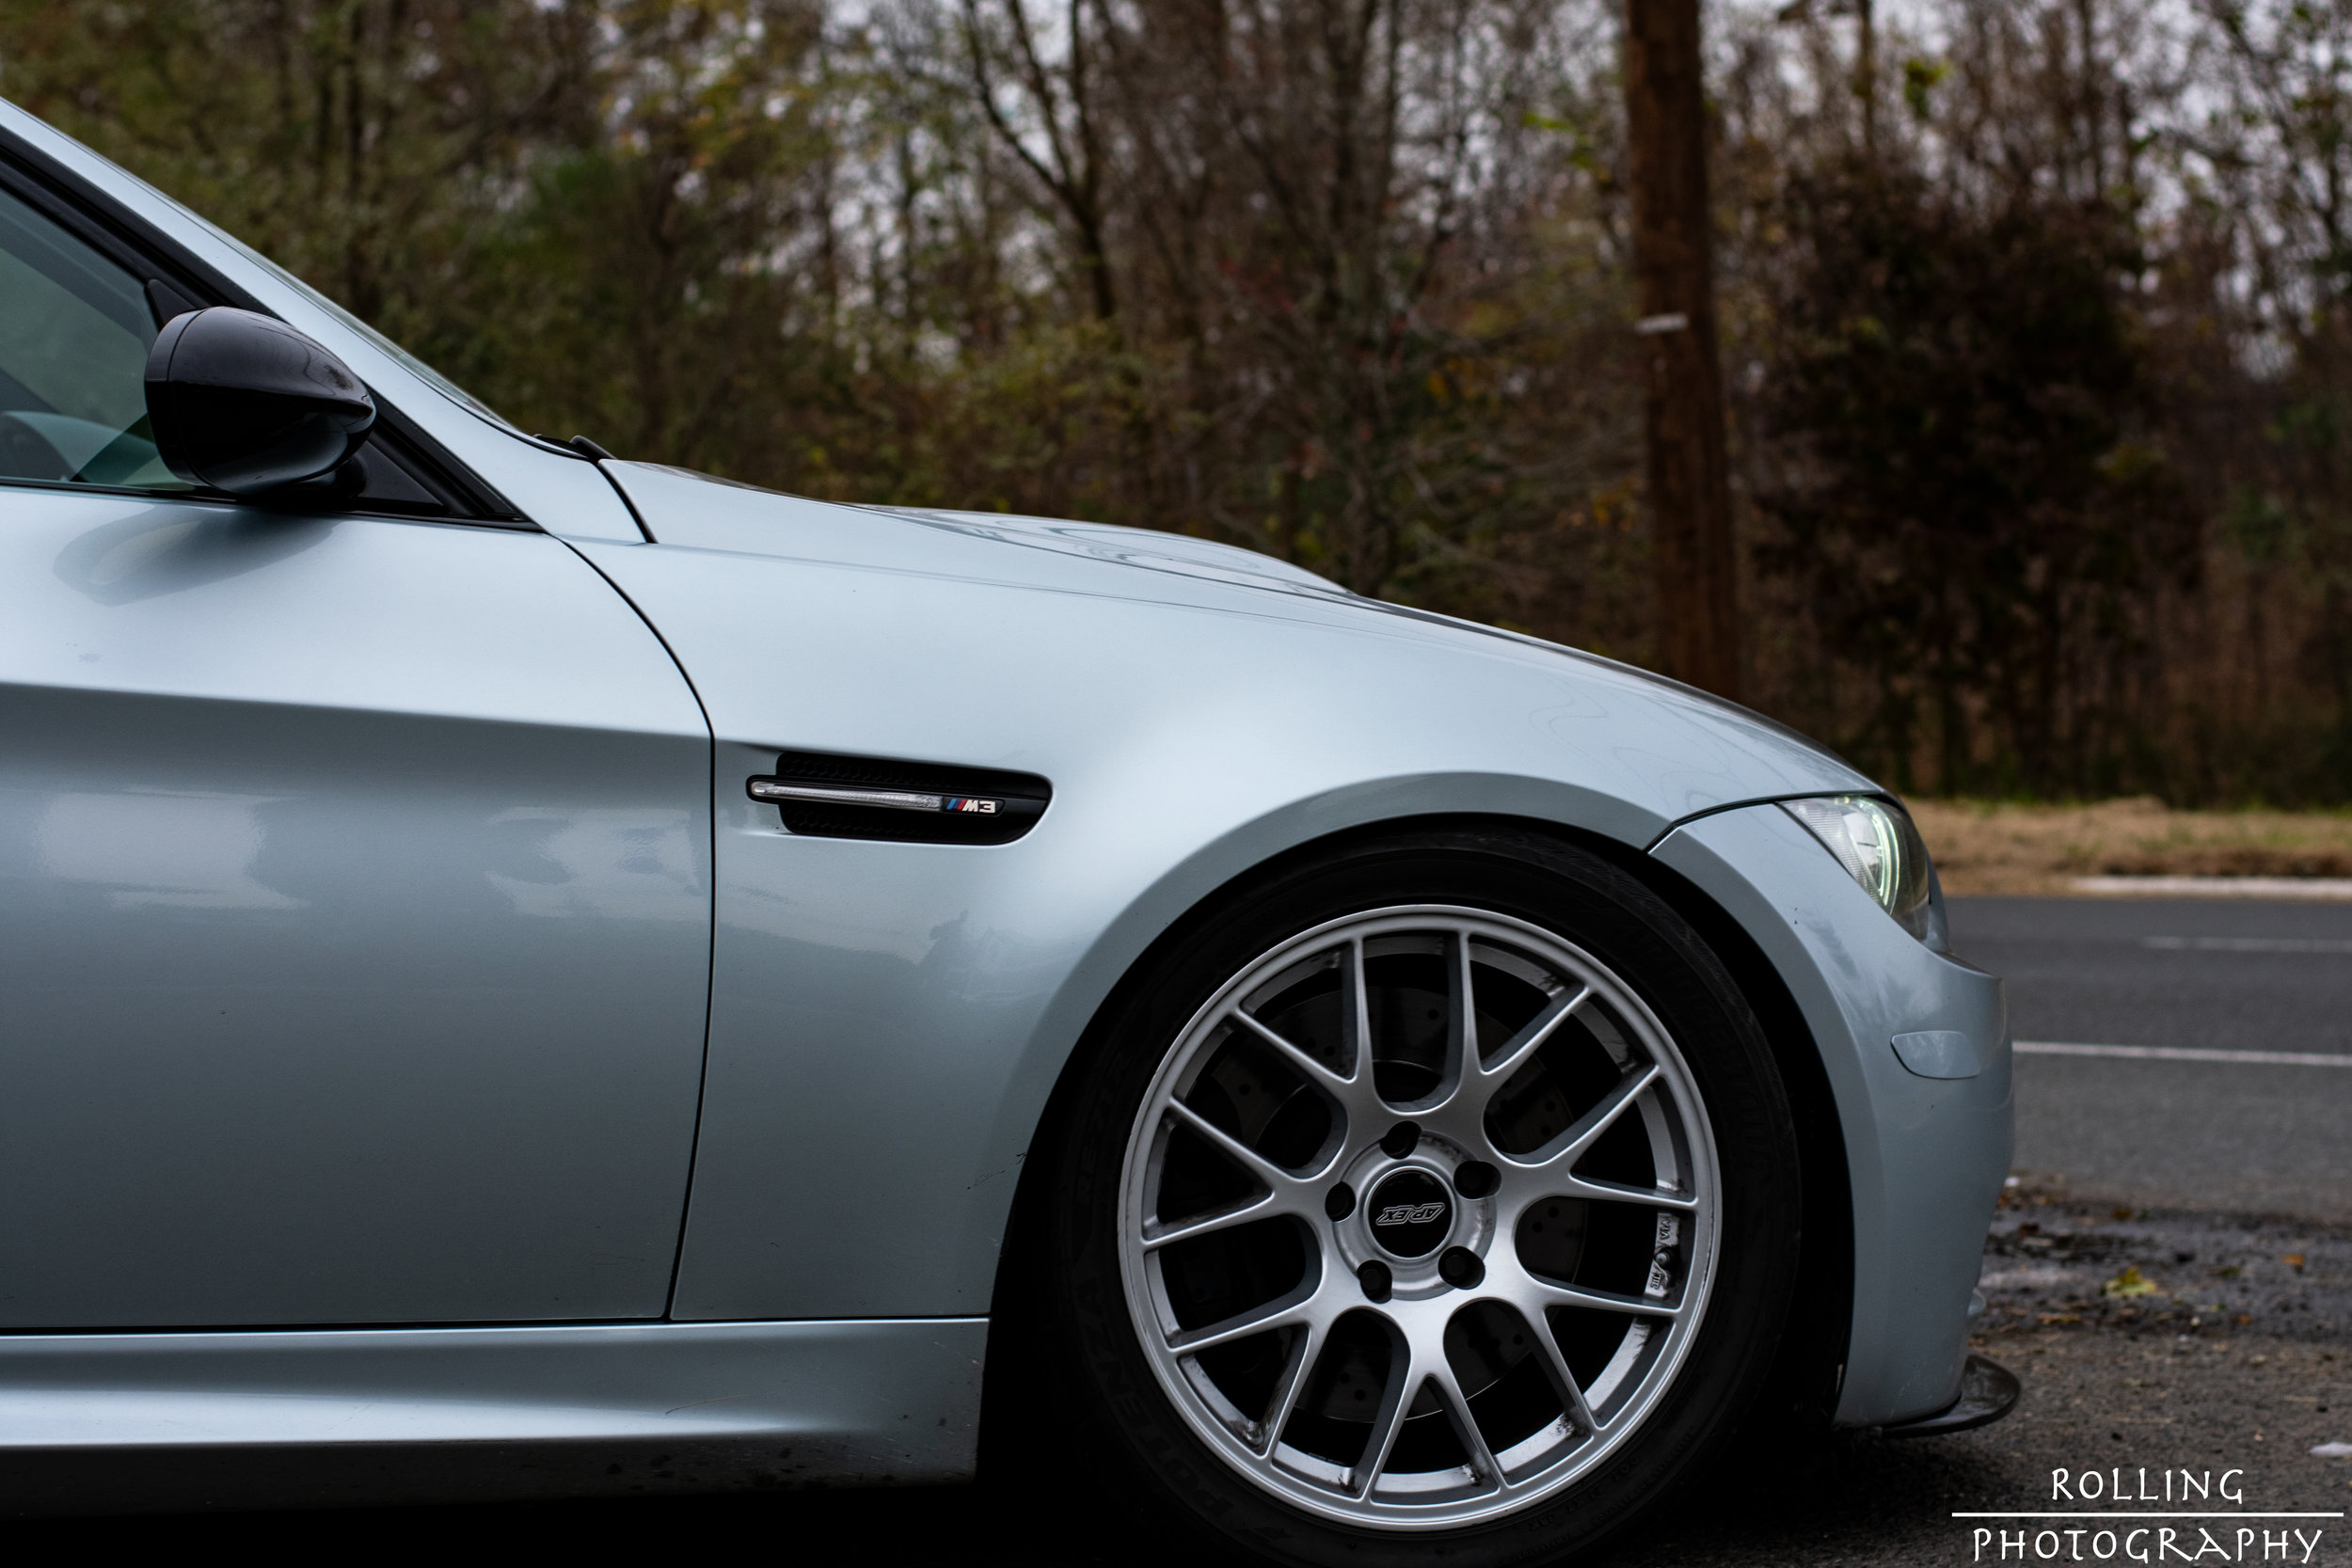 BMW M3 Sedan (E90) (Motivat3)  ISO 200, 50mm, f / 4.5 Shutter Speed 1/640